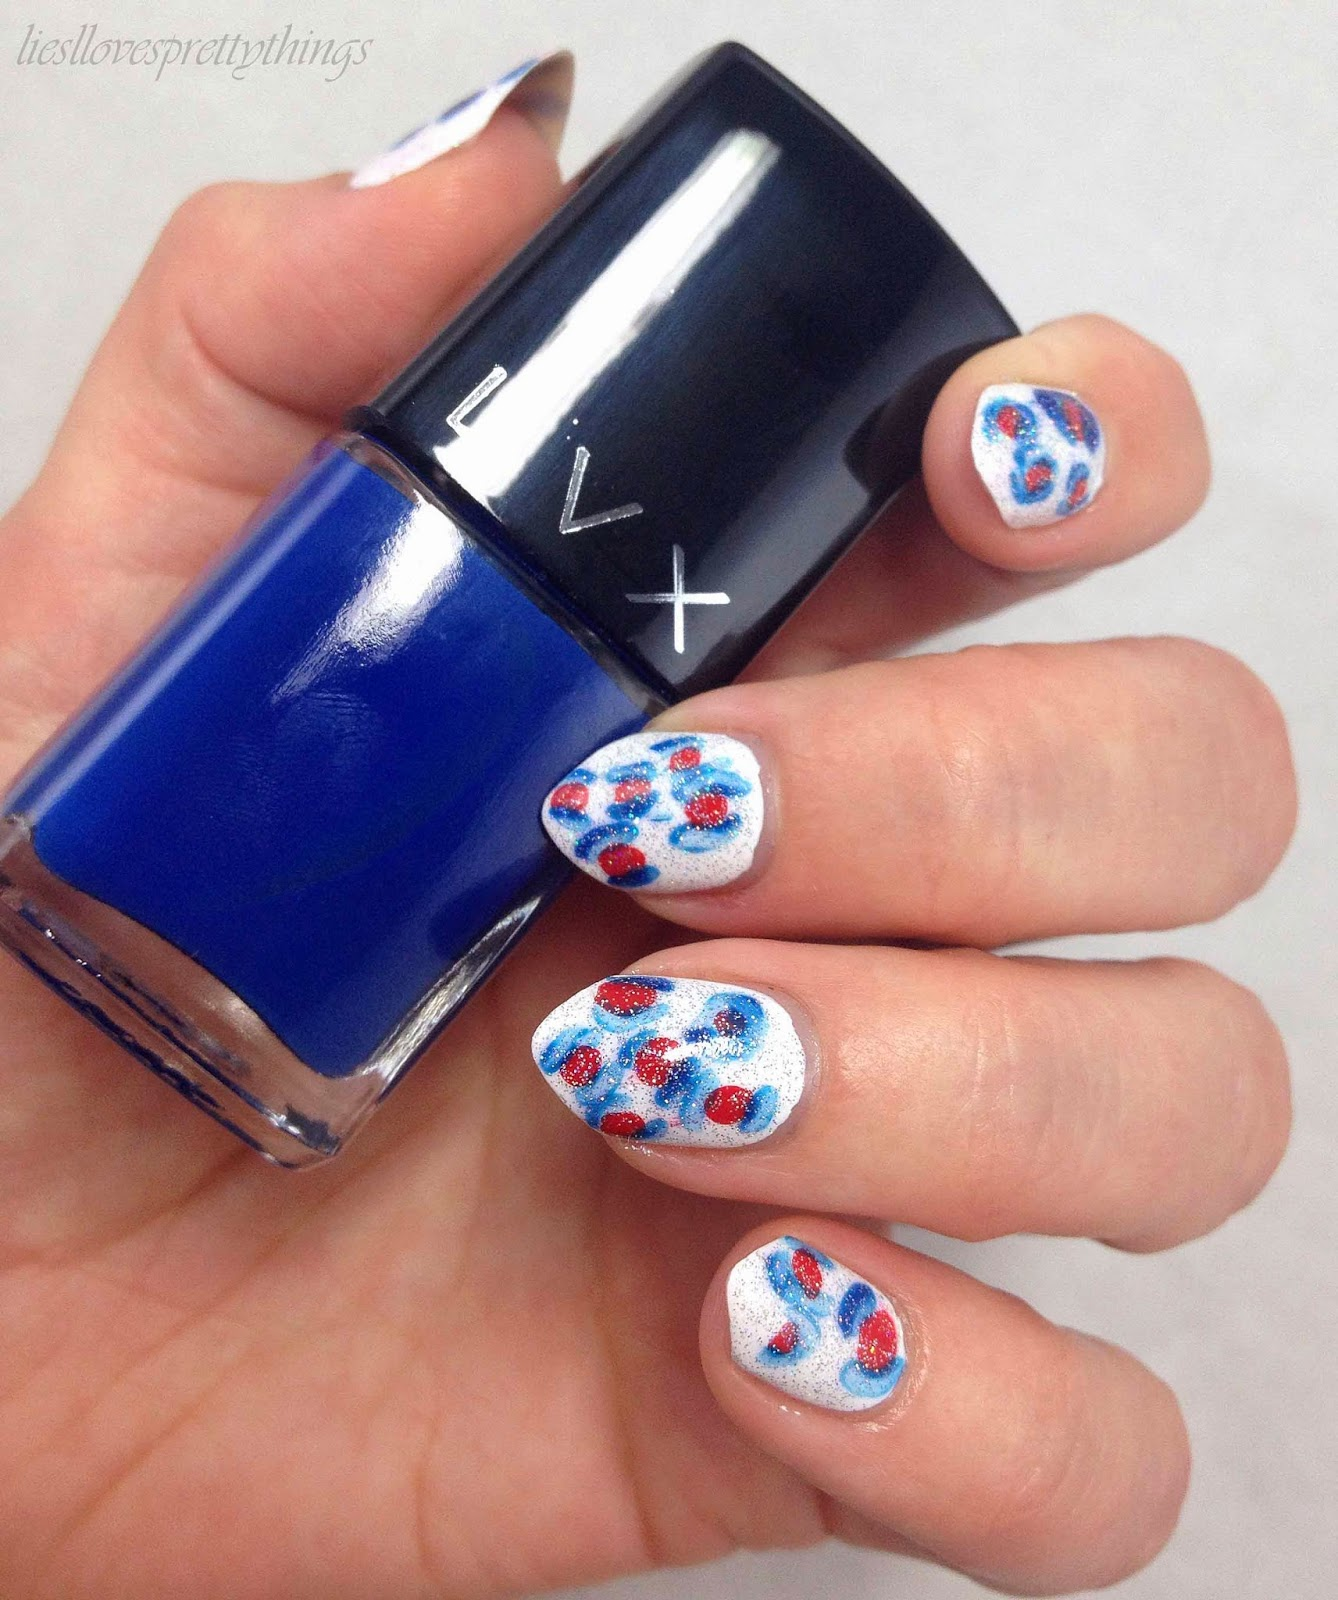 terrible Fourth of July leopard print nail art manicure